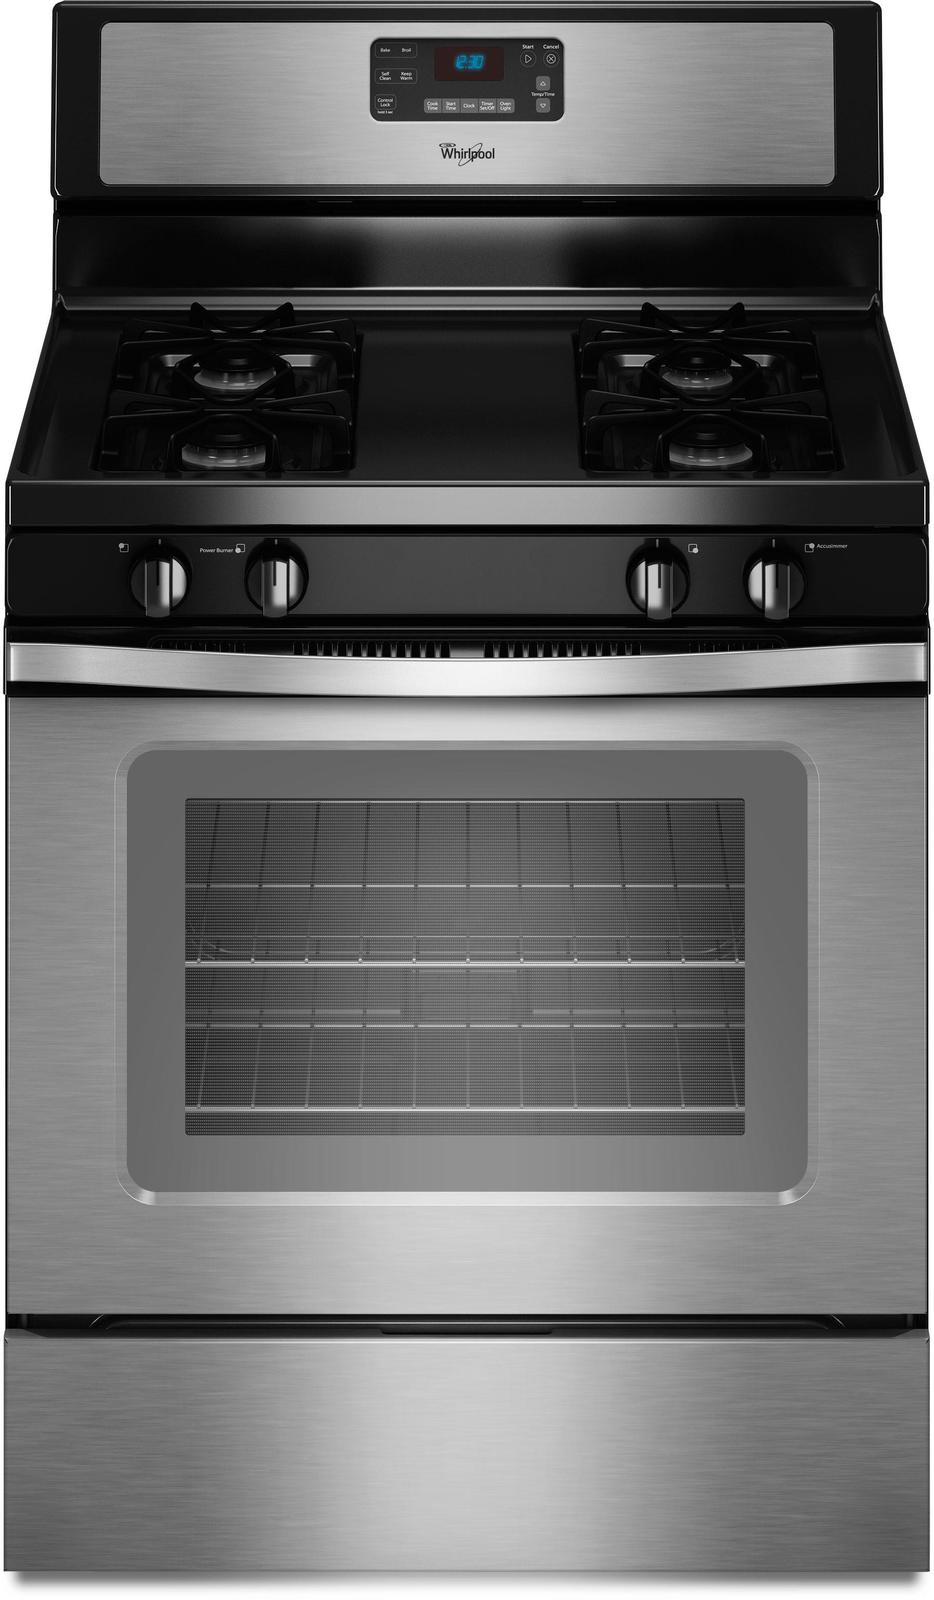 Wfg510s0as Whirlpool Wfg510s0as Gas Ranges Stainless Steel